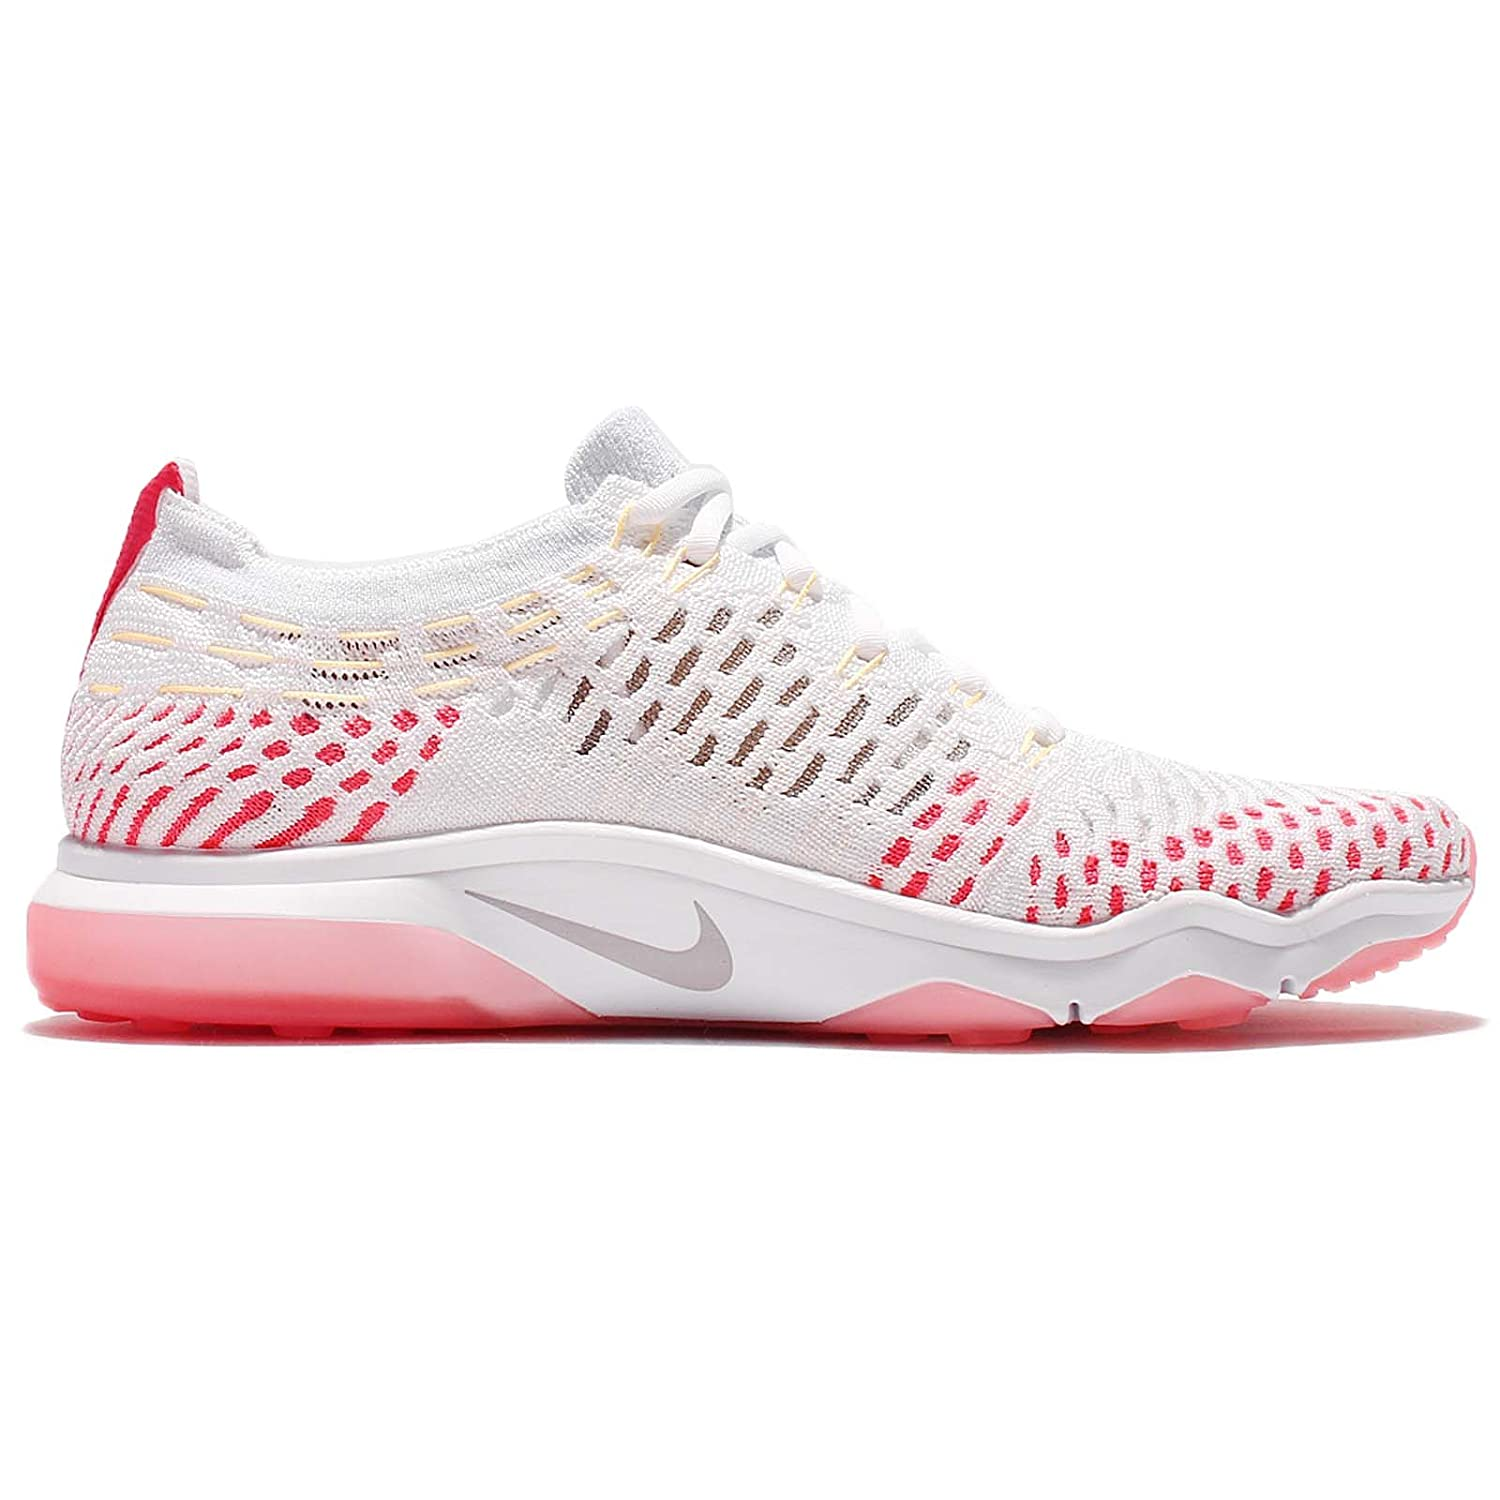 Nike Womens Air Zoom Fearless Flyknit White/Wolf Grey-Racer Pink-Melon Tint Size 10 US